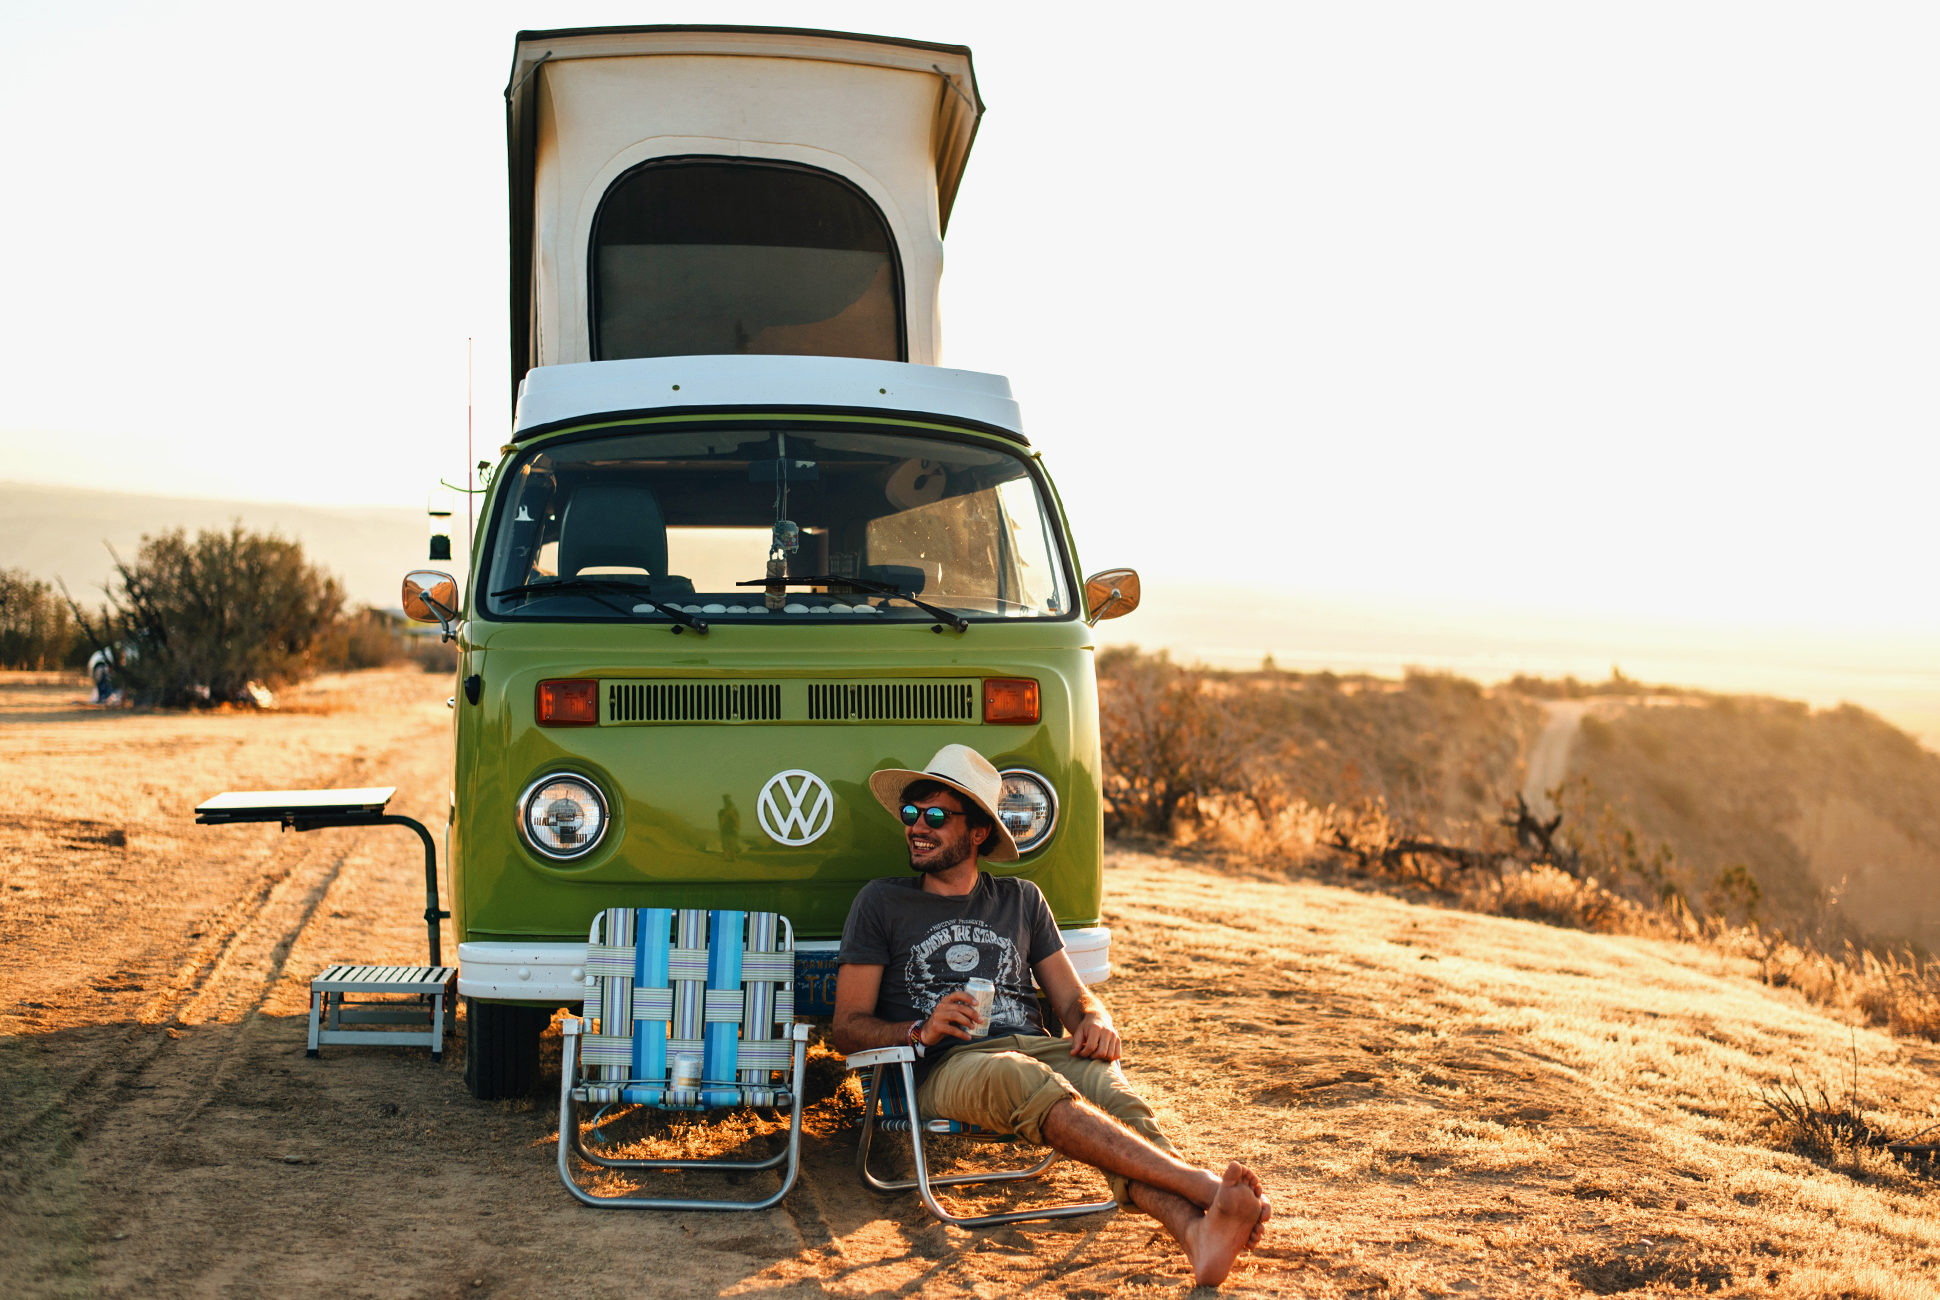 With Hipcamp, Book Your Campsite Like an Airbnb - America's greatest campsites, now catalogued online.